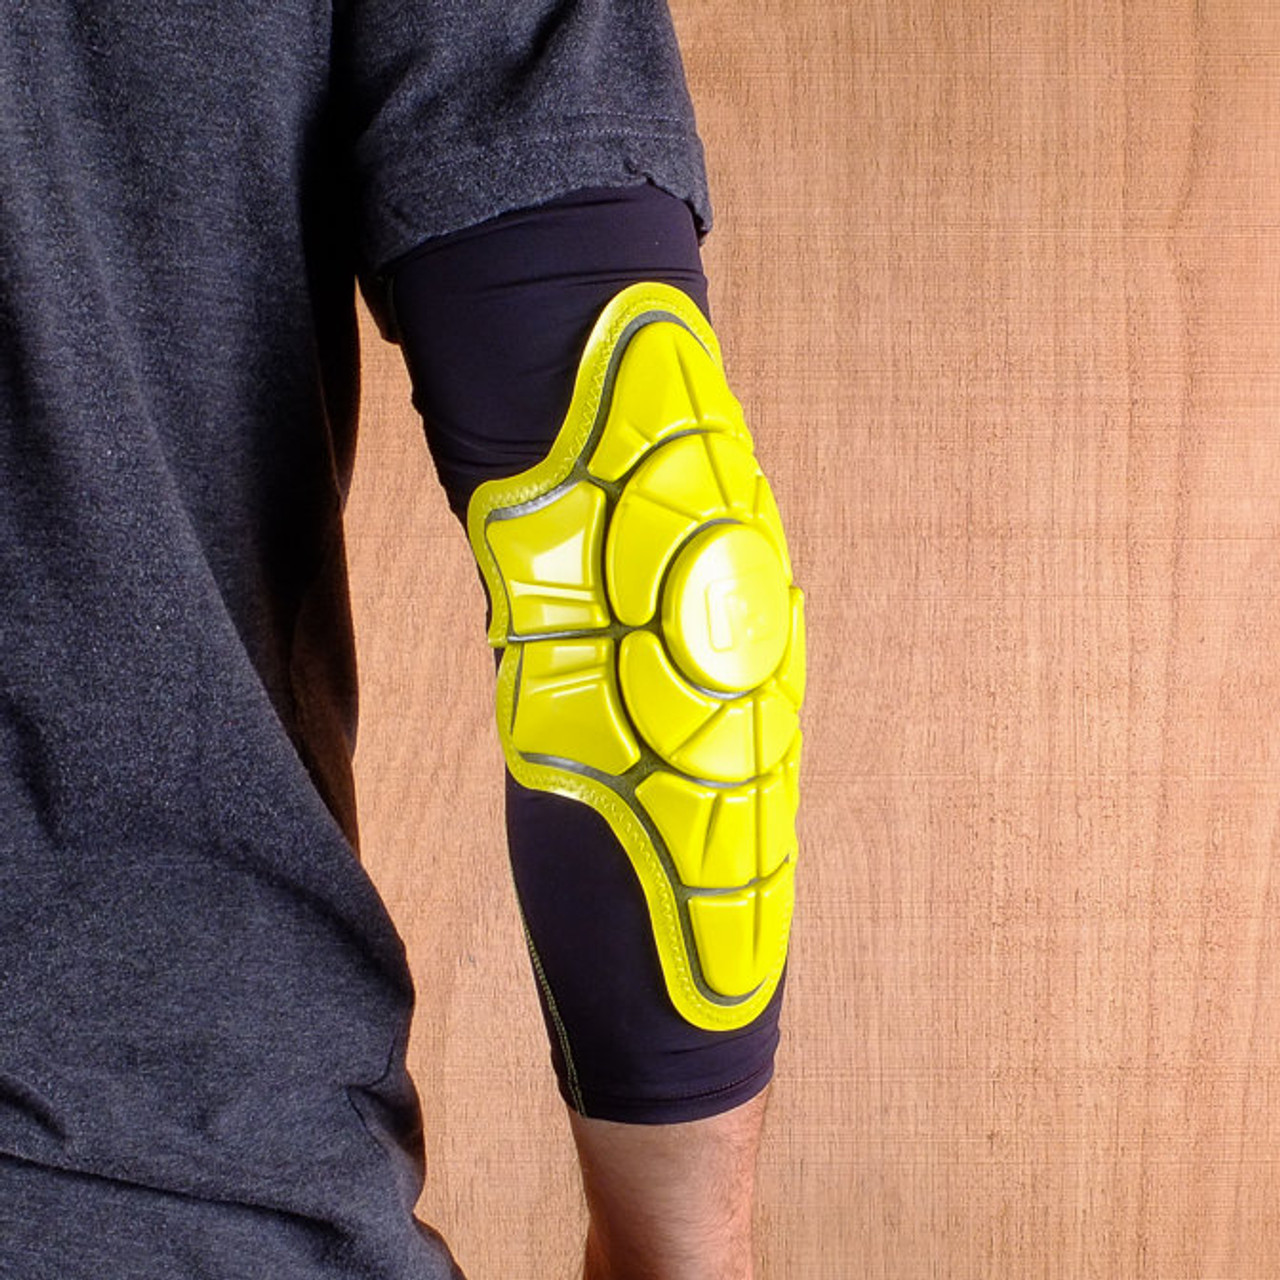 G-Form Pro-X Yellow Elbow Pads